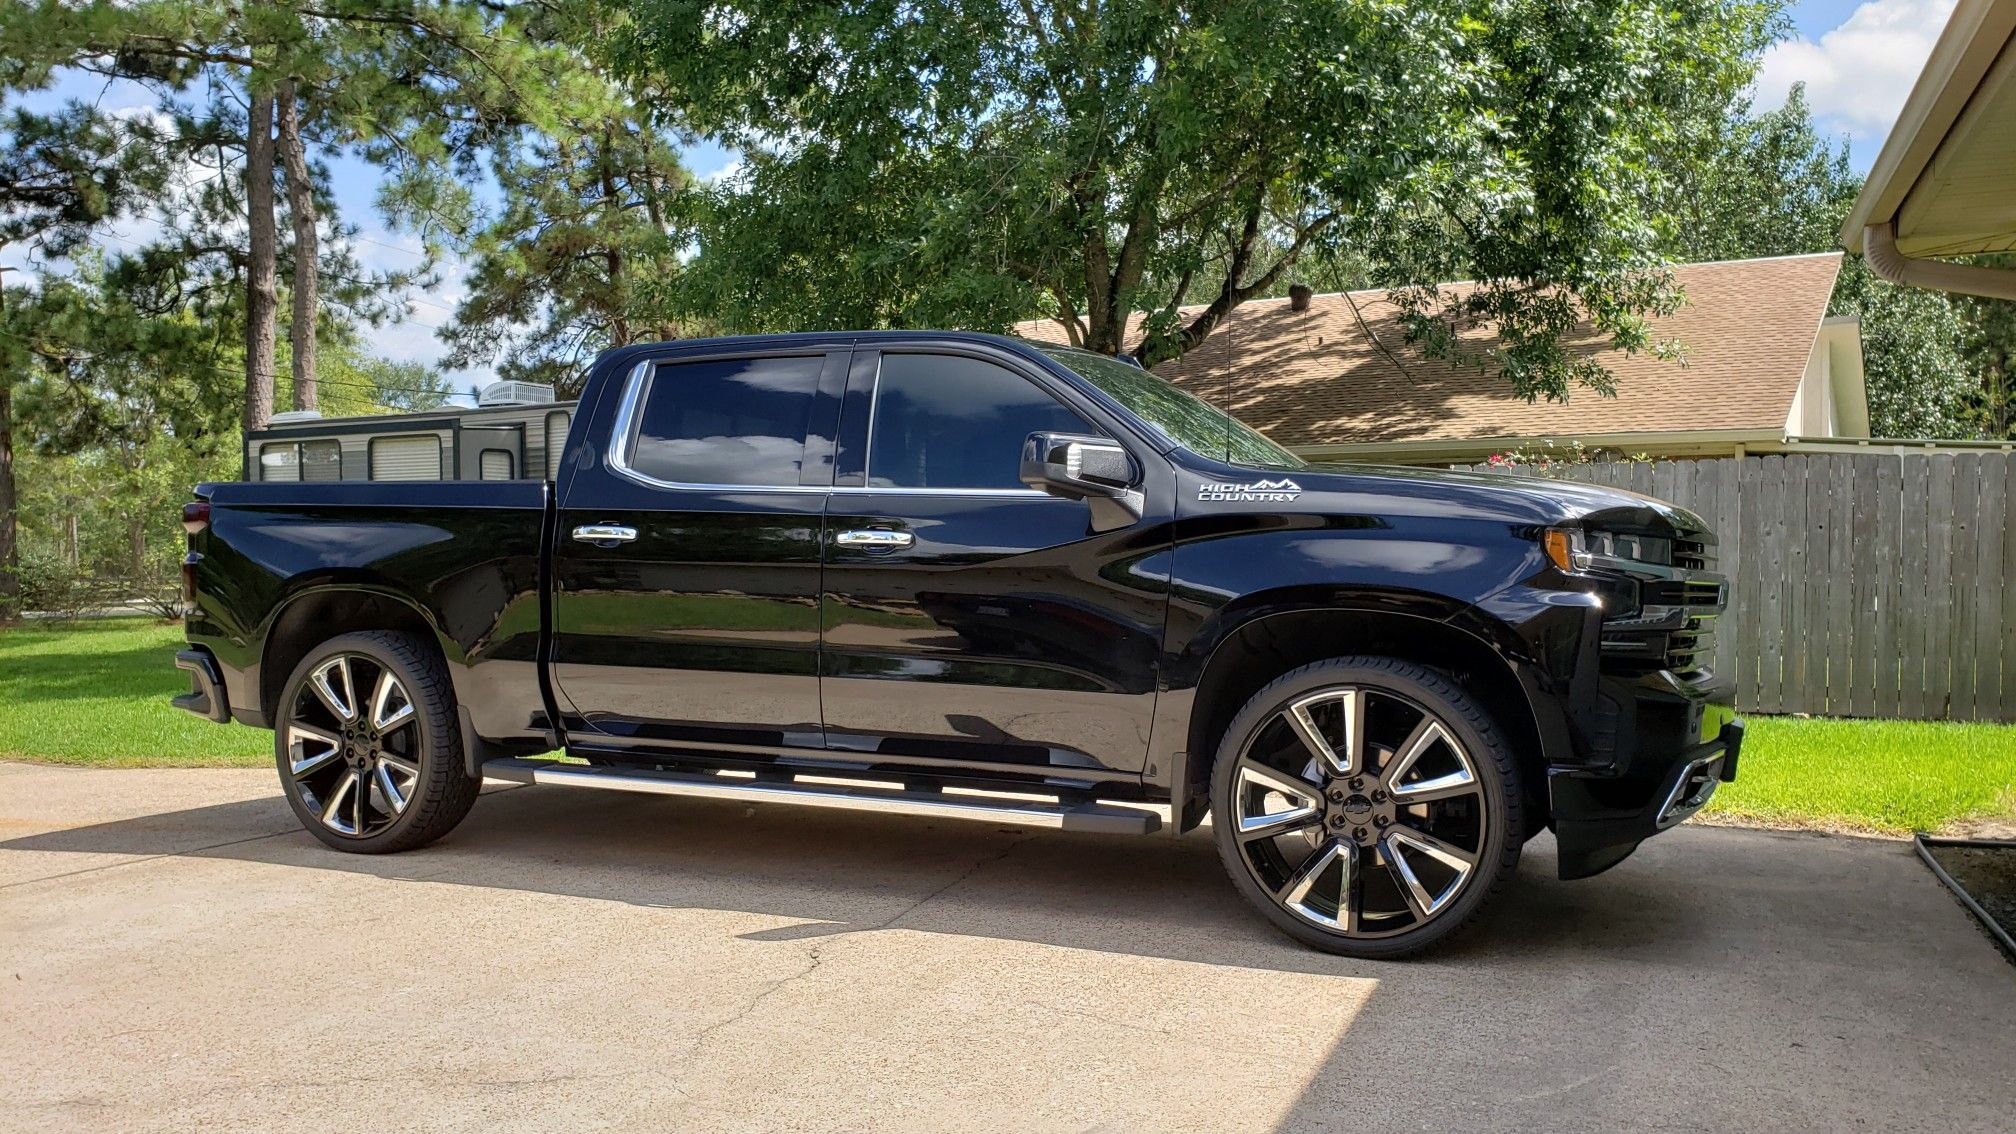 2019 Silverado High Country 6 2l On 26 Replicas Wrapped In 305 30